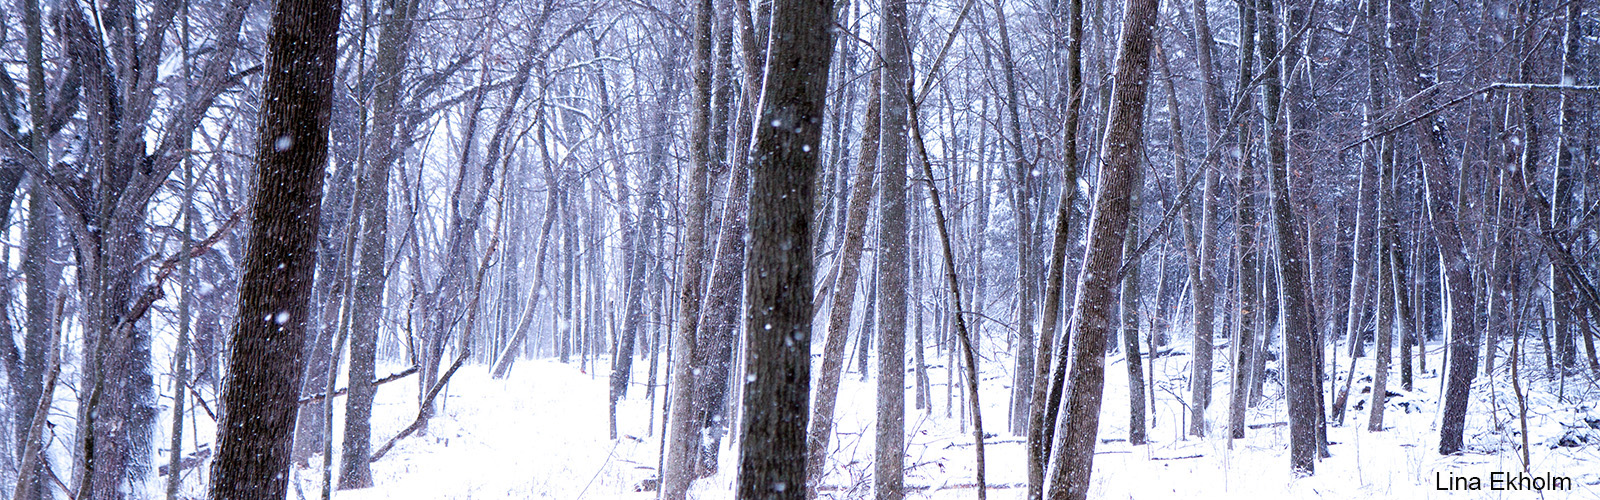 Dark straight-trunked trees stand out in snowy landscape.